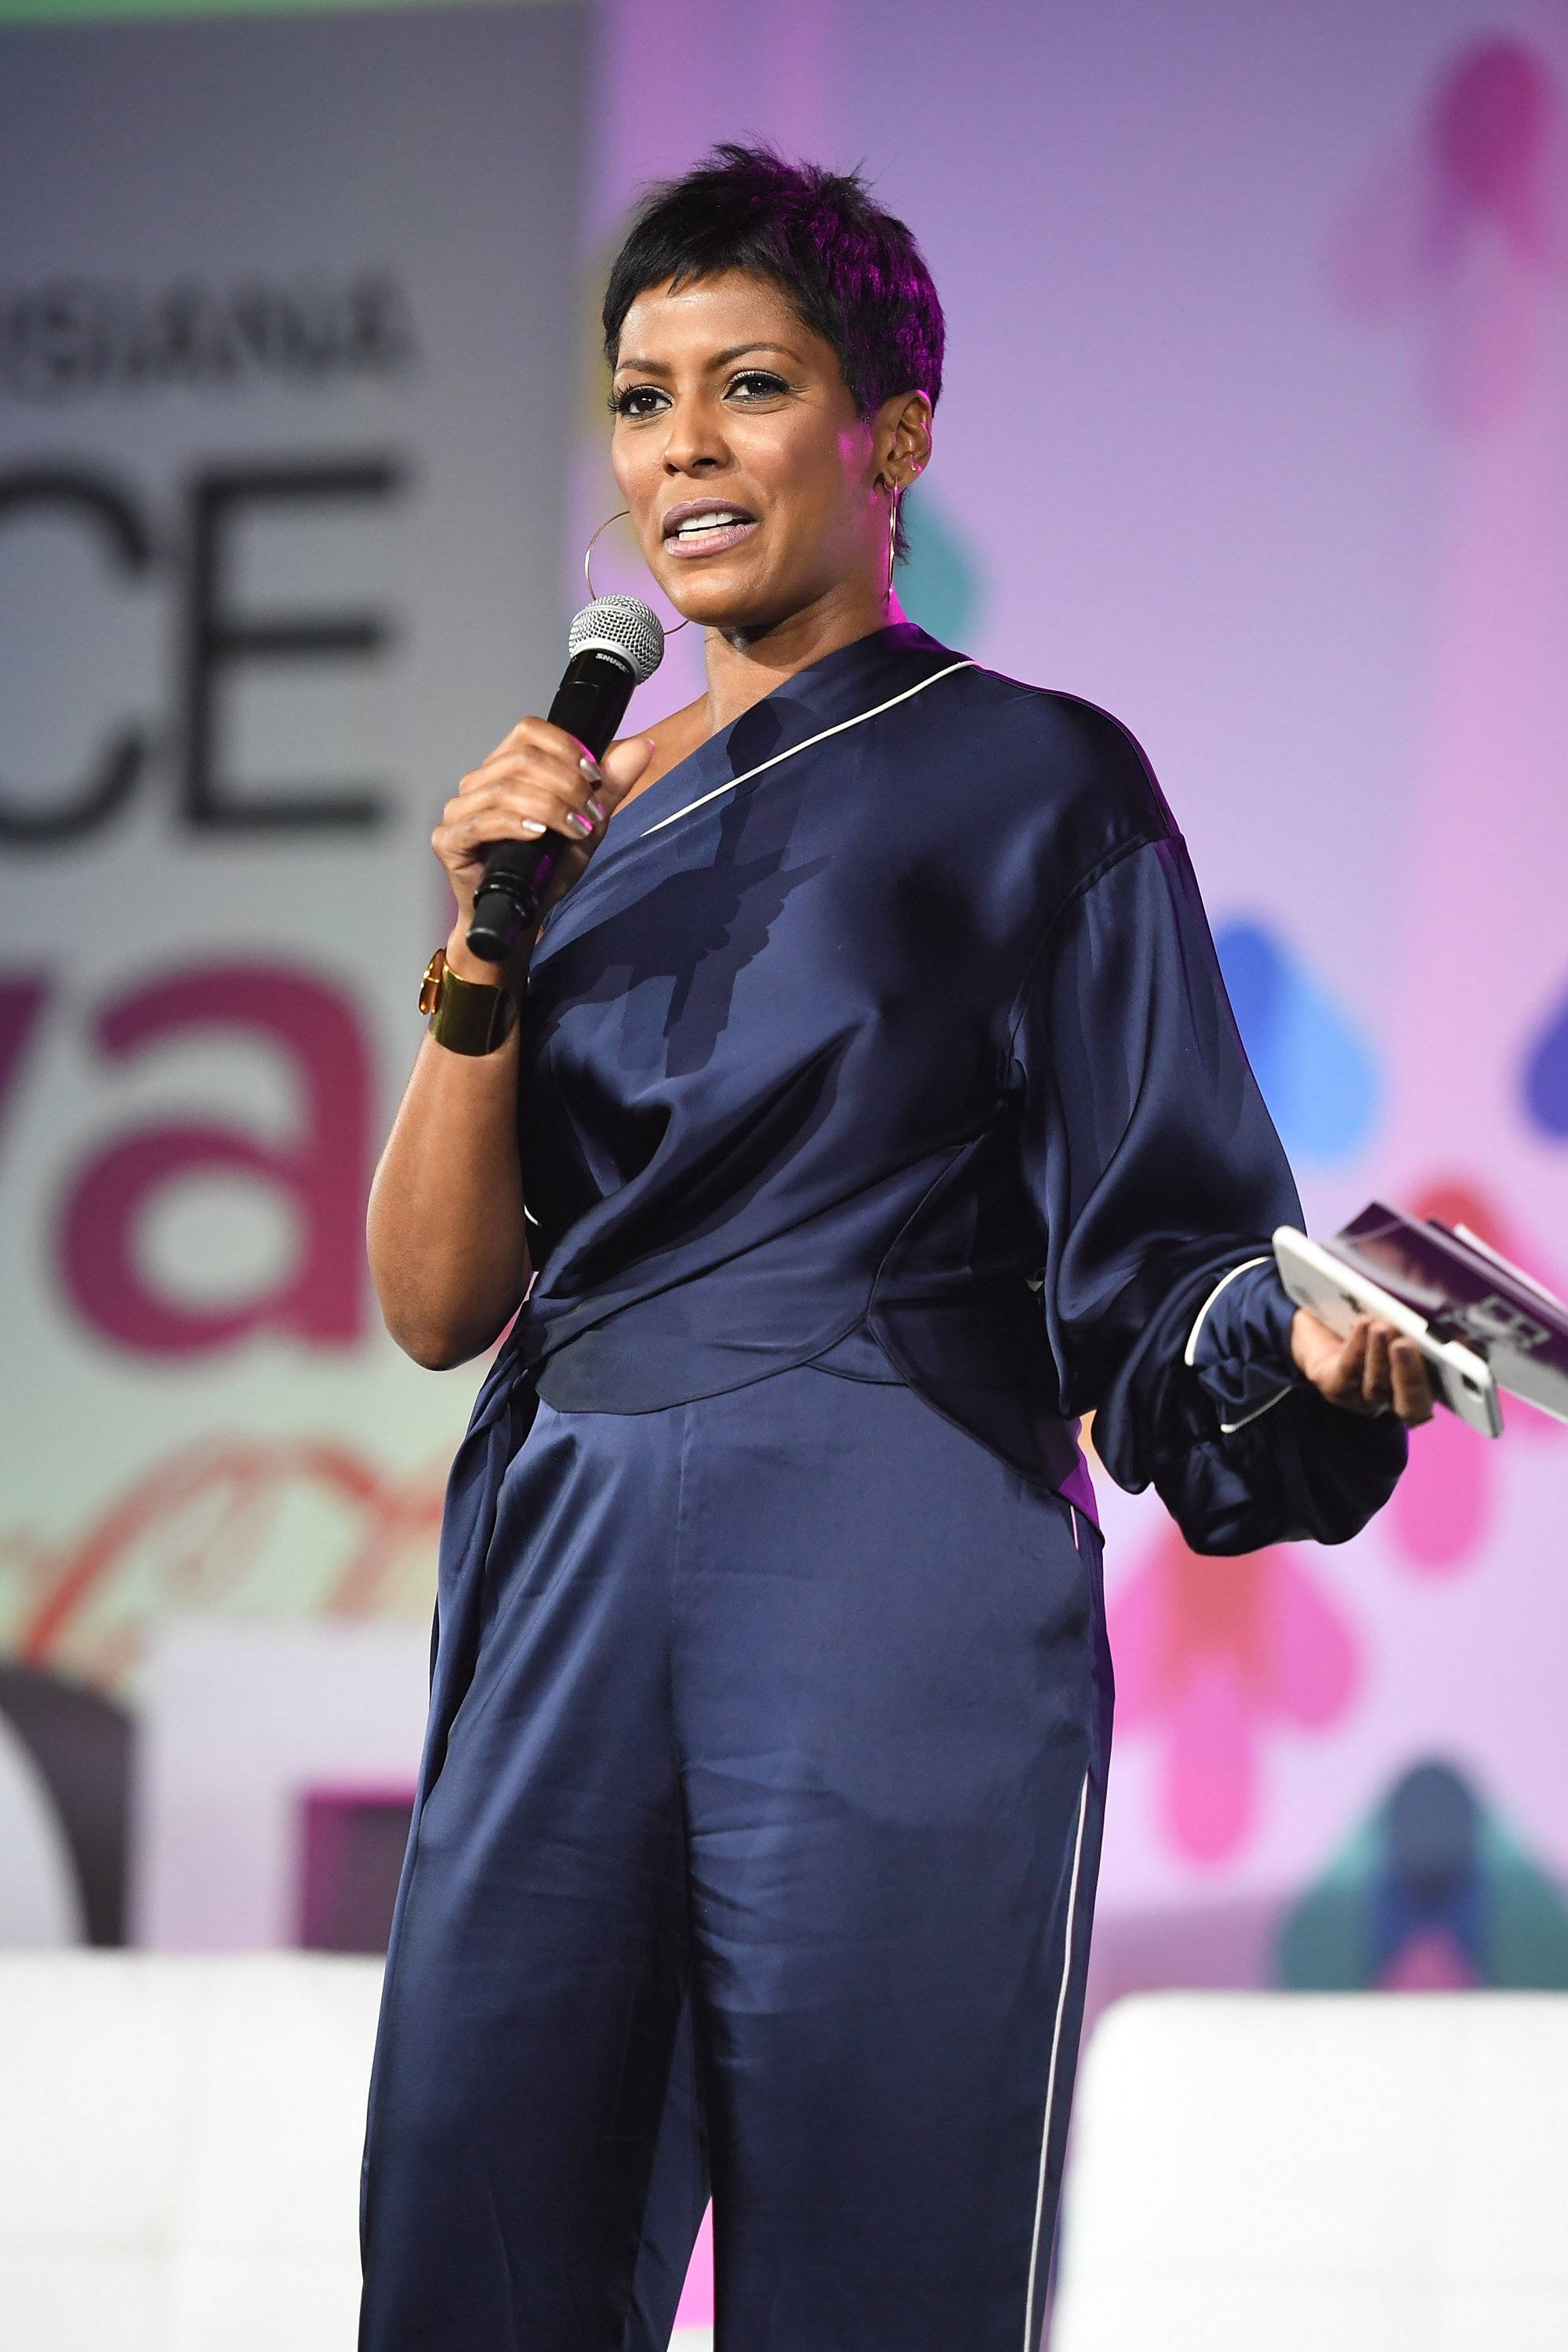 Tamron Hall at the 2017 ESSENCE Festival on June 30, 2017 in Louisiana | Photo: Getty Images